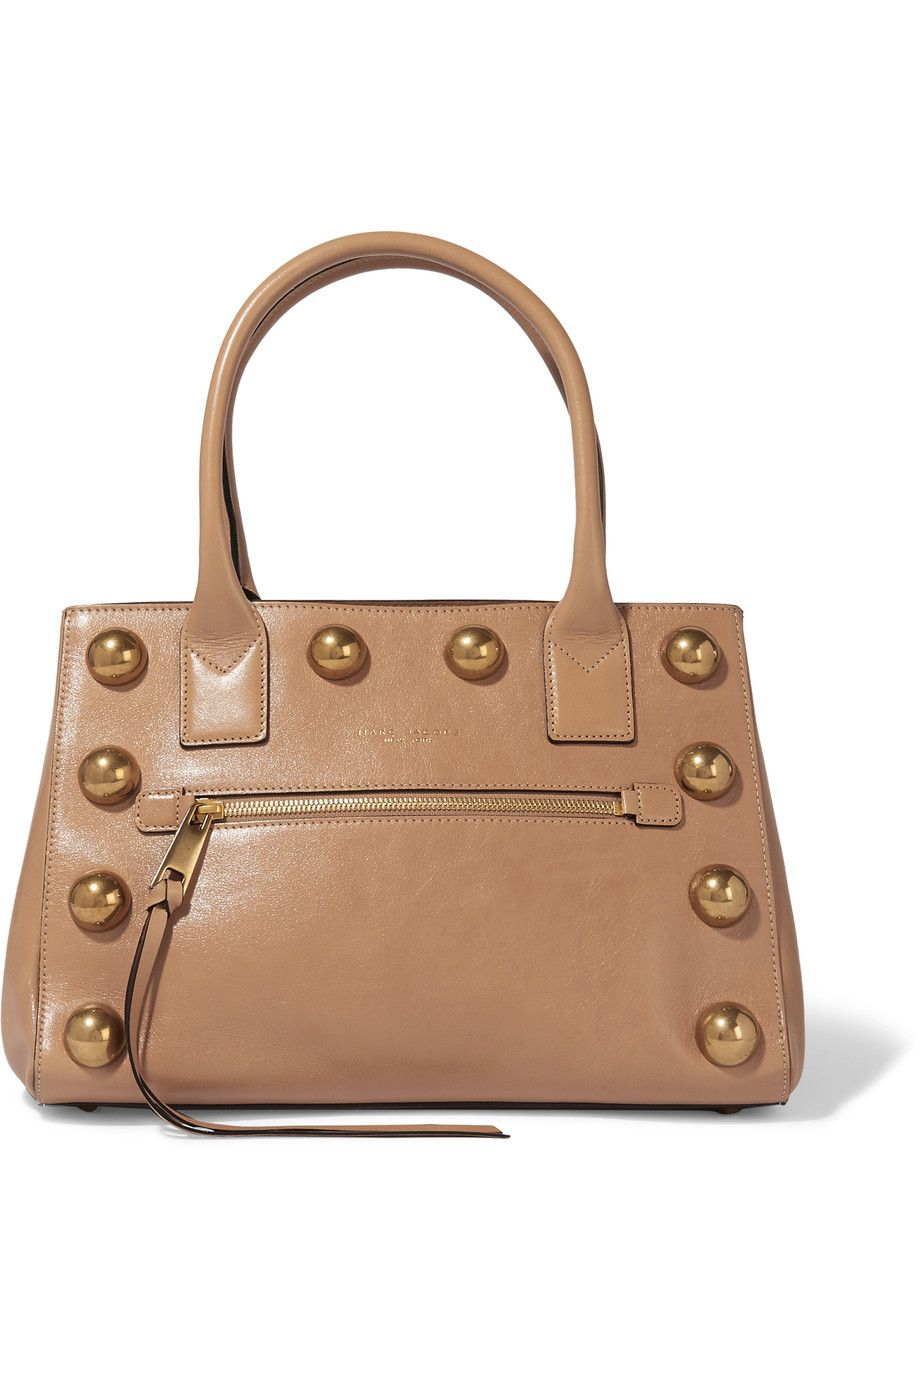 9d3bd6fcc977 MARC JACOBS The Not So Big Apple Studded Leather Tote.  marcjacobs  bags   hand bags  suede  tote